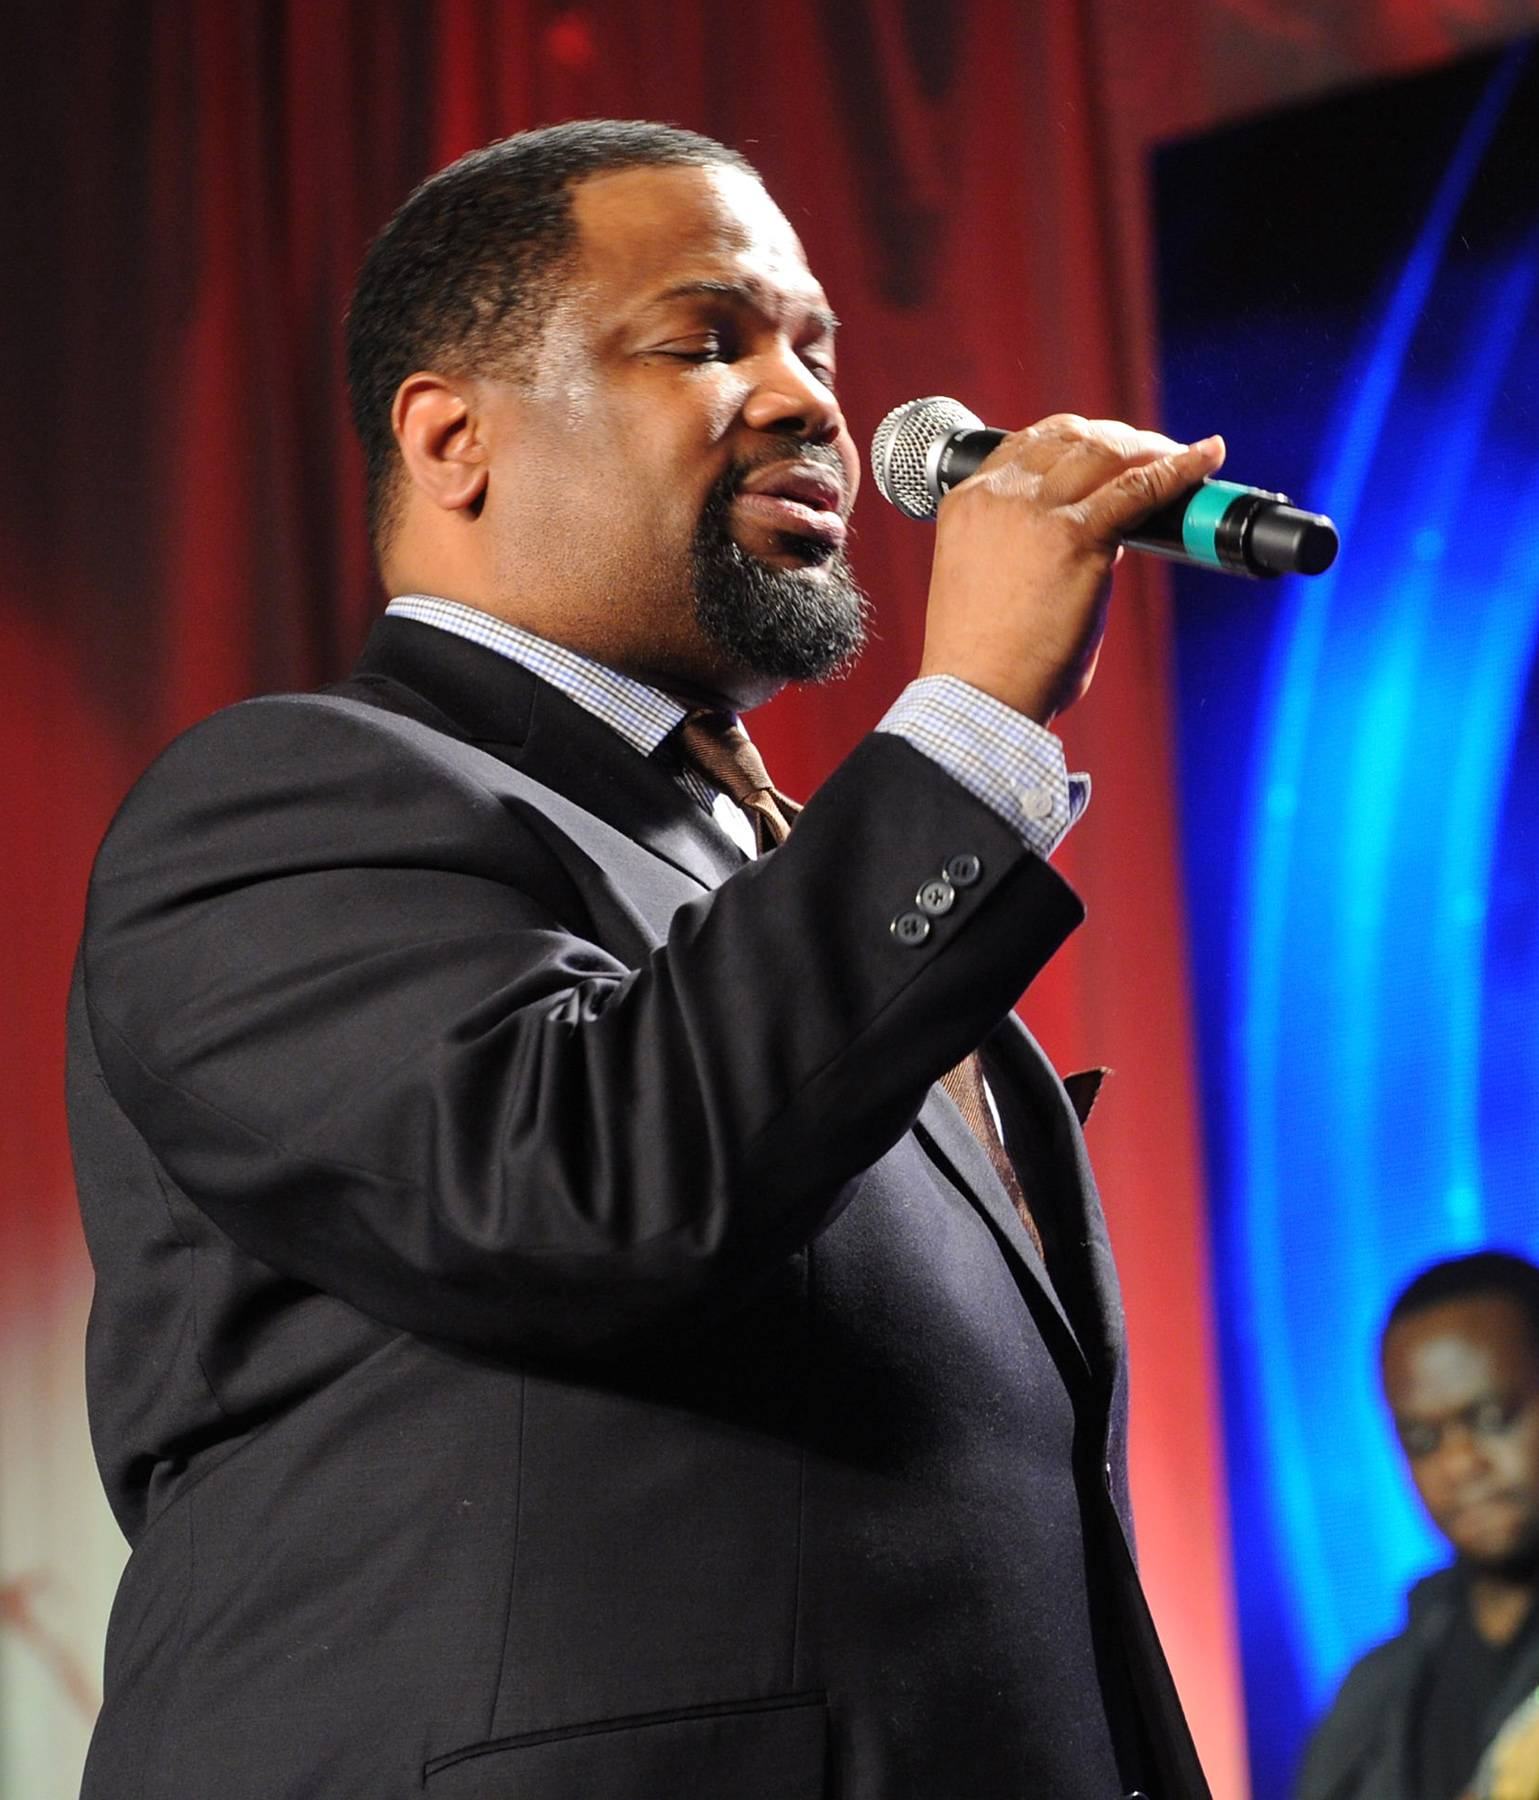 Hezekiah Walker's R&B Contemporaries - Hezekiah Walker is no stranger to the R&B world and has worked with quite a few notable R&B vocalists in his day, even though his love, passion and career is rooted in gospel. Click on to see Hezekiah's R&B contemporaries and catch him on this year's Celebration of Gospel.  (Photo: Rick Diamond/Getty Images for BMI)